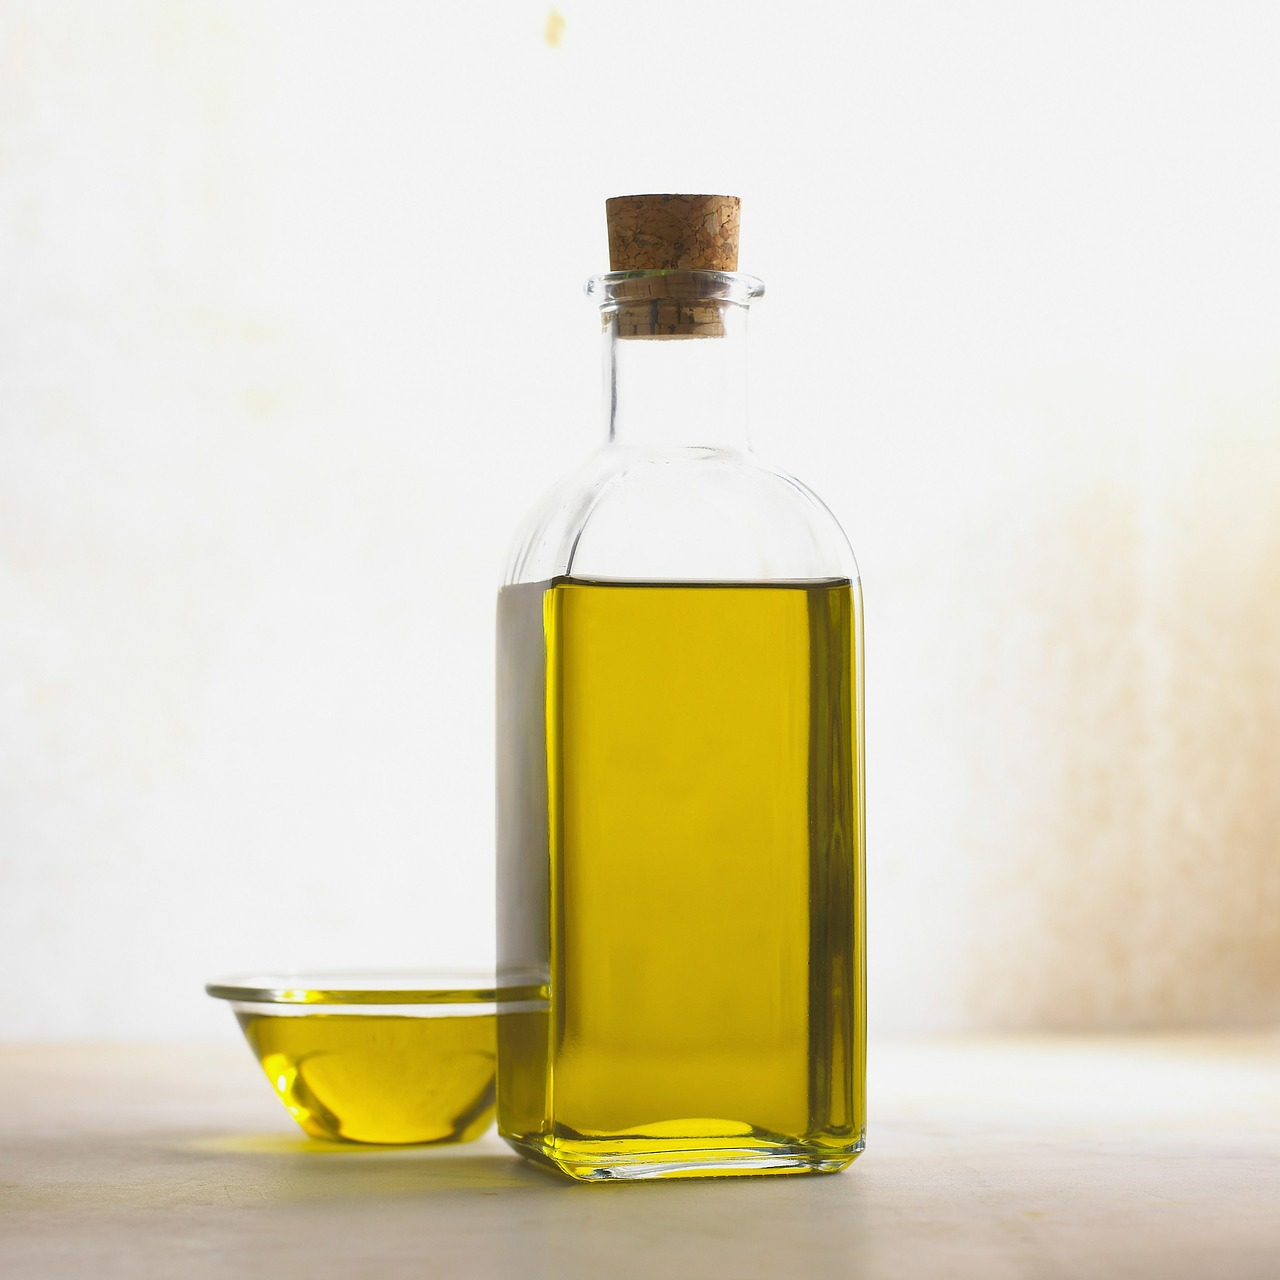 Here_s-How-To-Make-Cannabis-Cooking-Oil-At-Homeoil.jpg